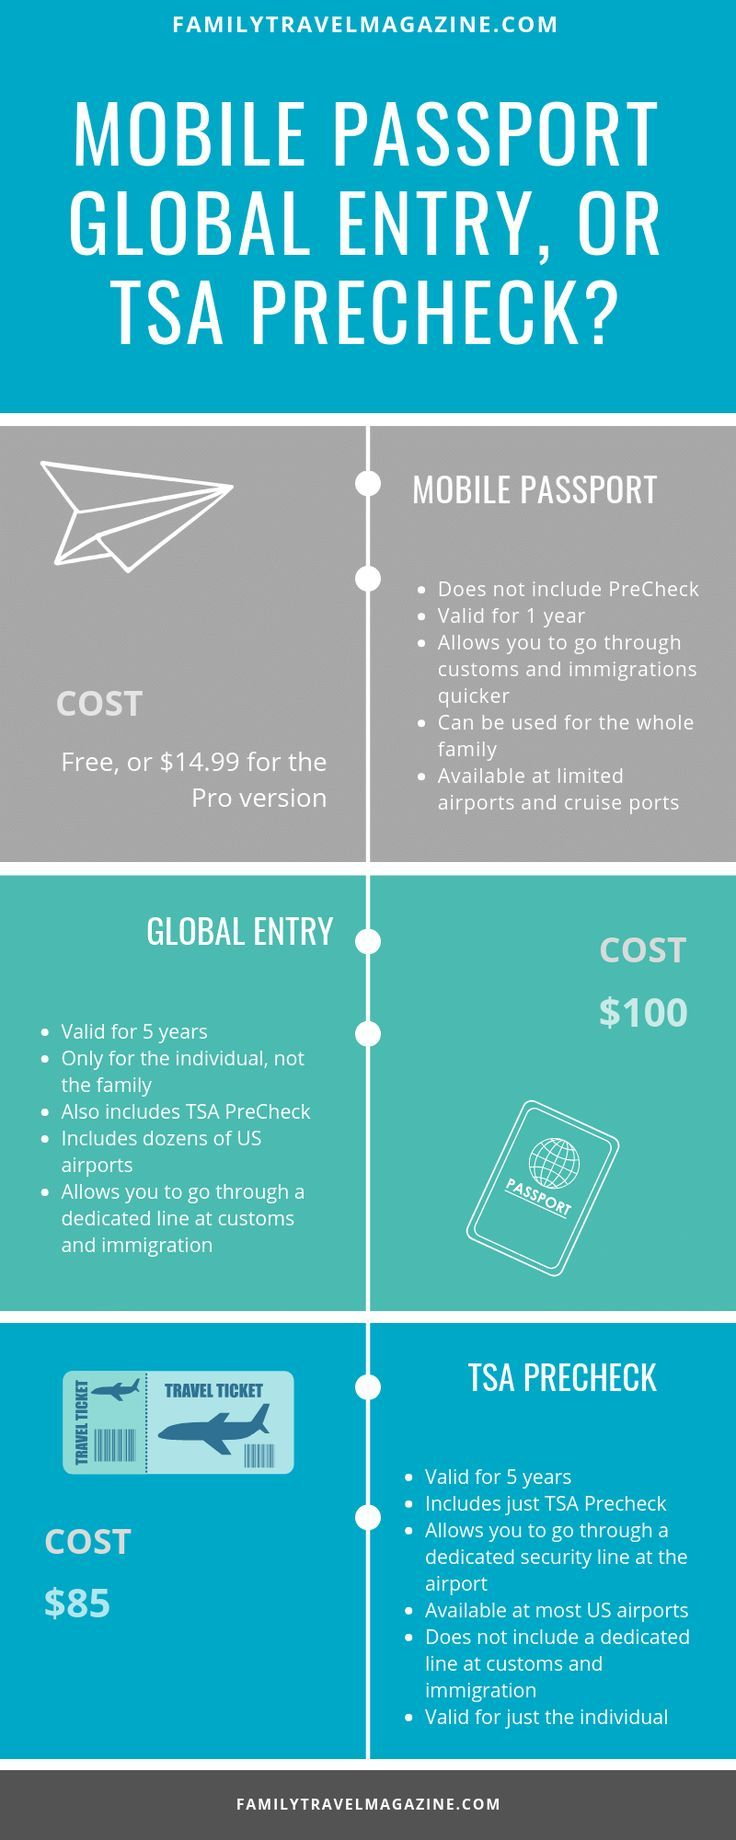 Which will work best for you? Mobile passport, global